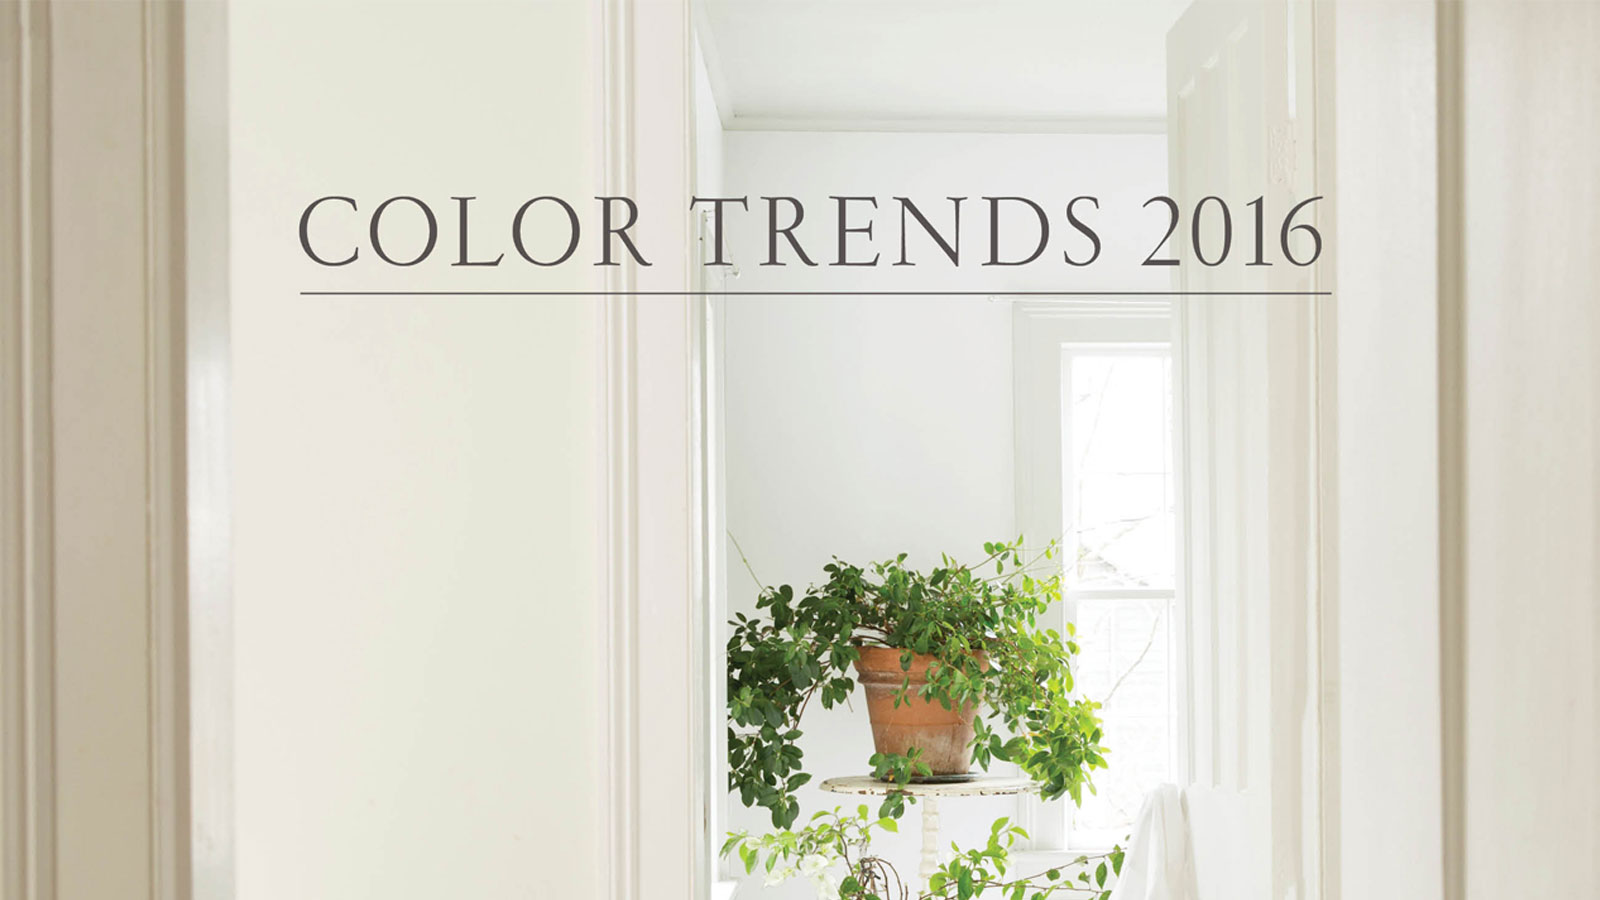 2016 Paint Trends Colour Trends 2016 Eastside Paint And Wallpaper Benjamin Moore